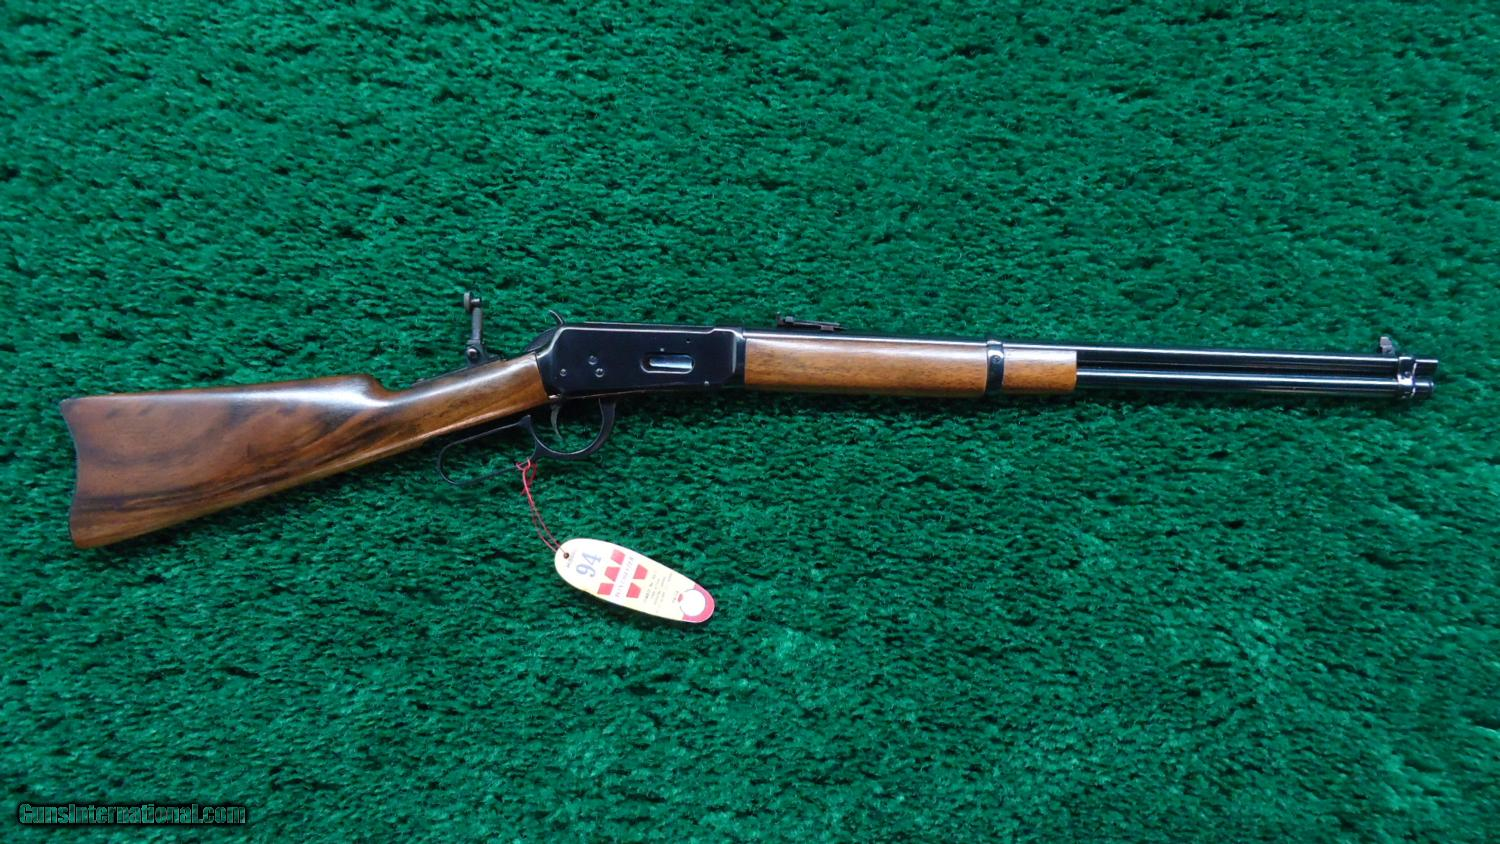 Six Miniature Winchester 1894 Lever Action Rifles In Wooden Crate